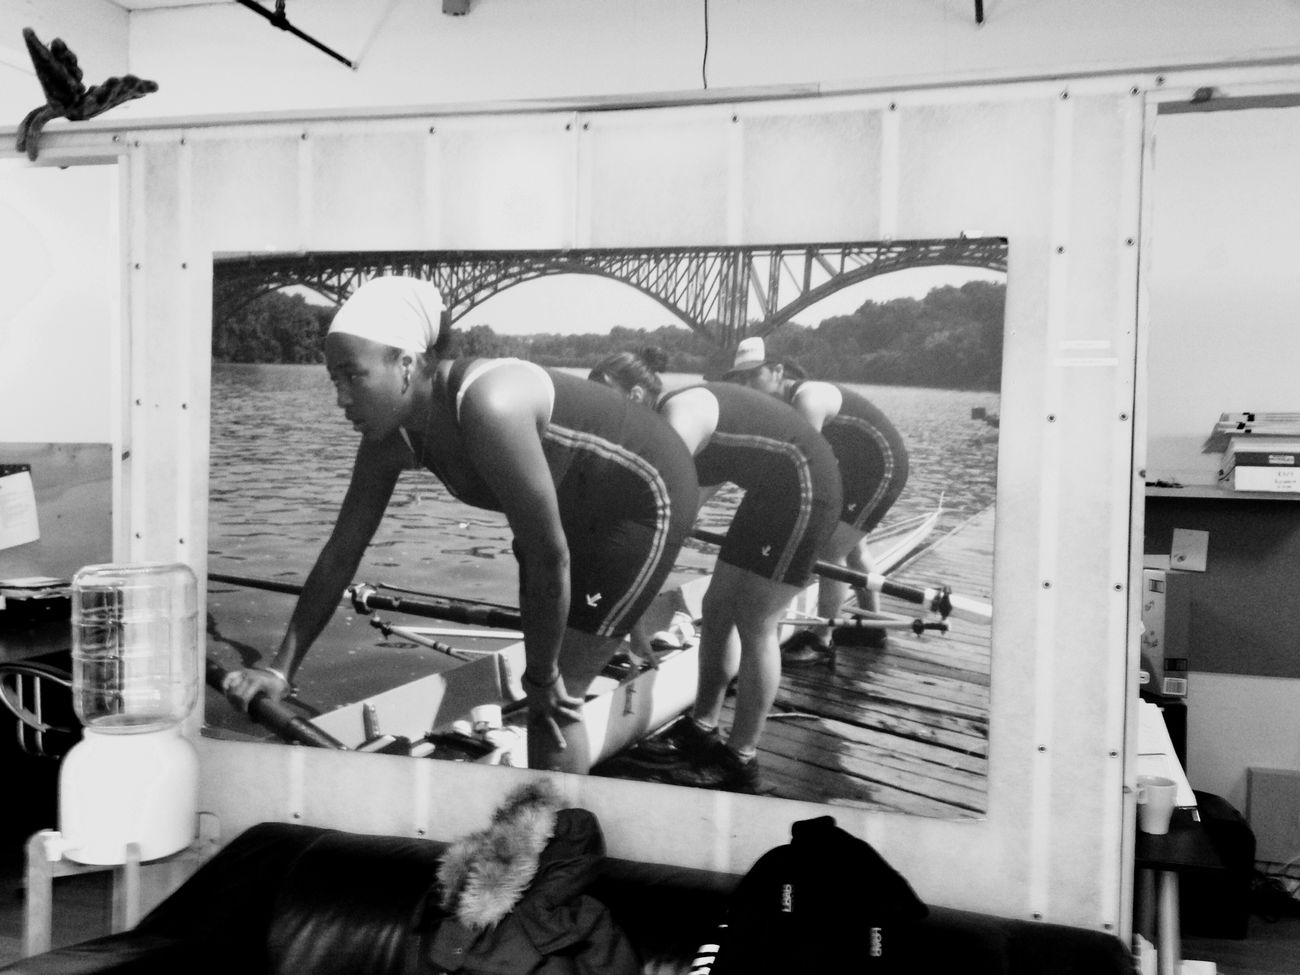 Wall Art at Row New York Rowing Love To Row Blackandwhite Tadaa Community